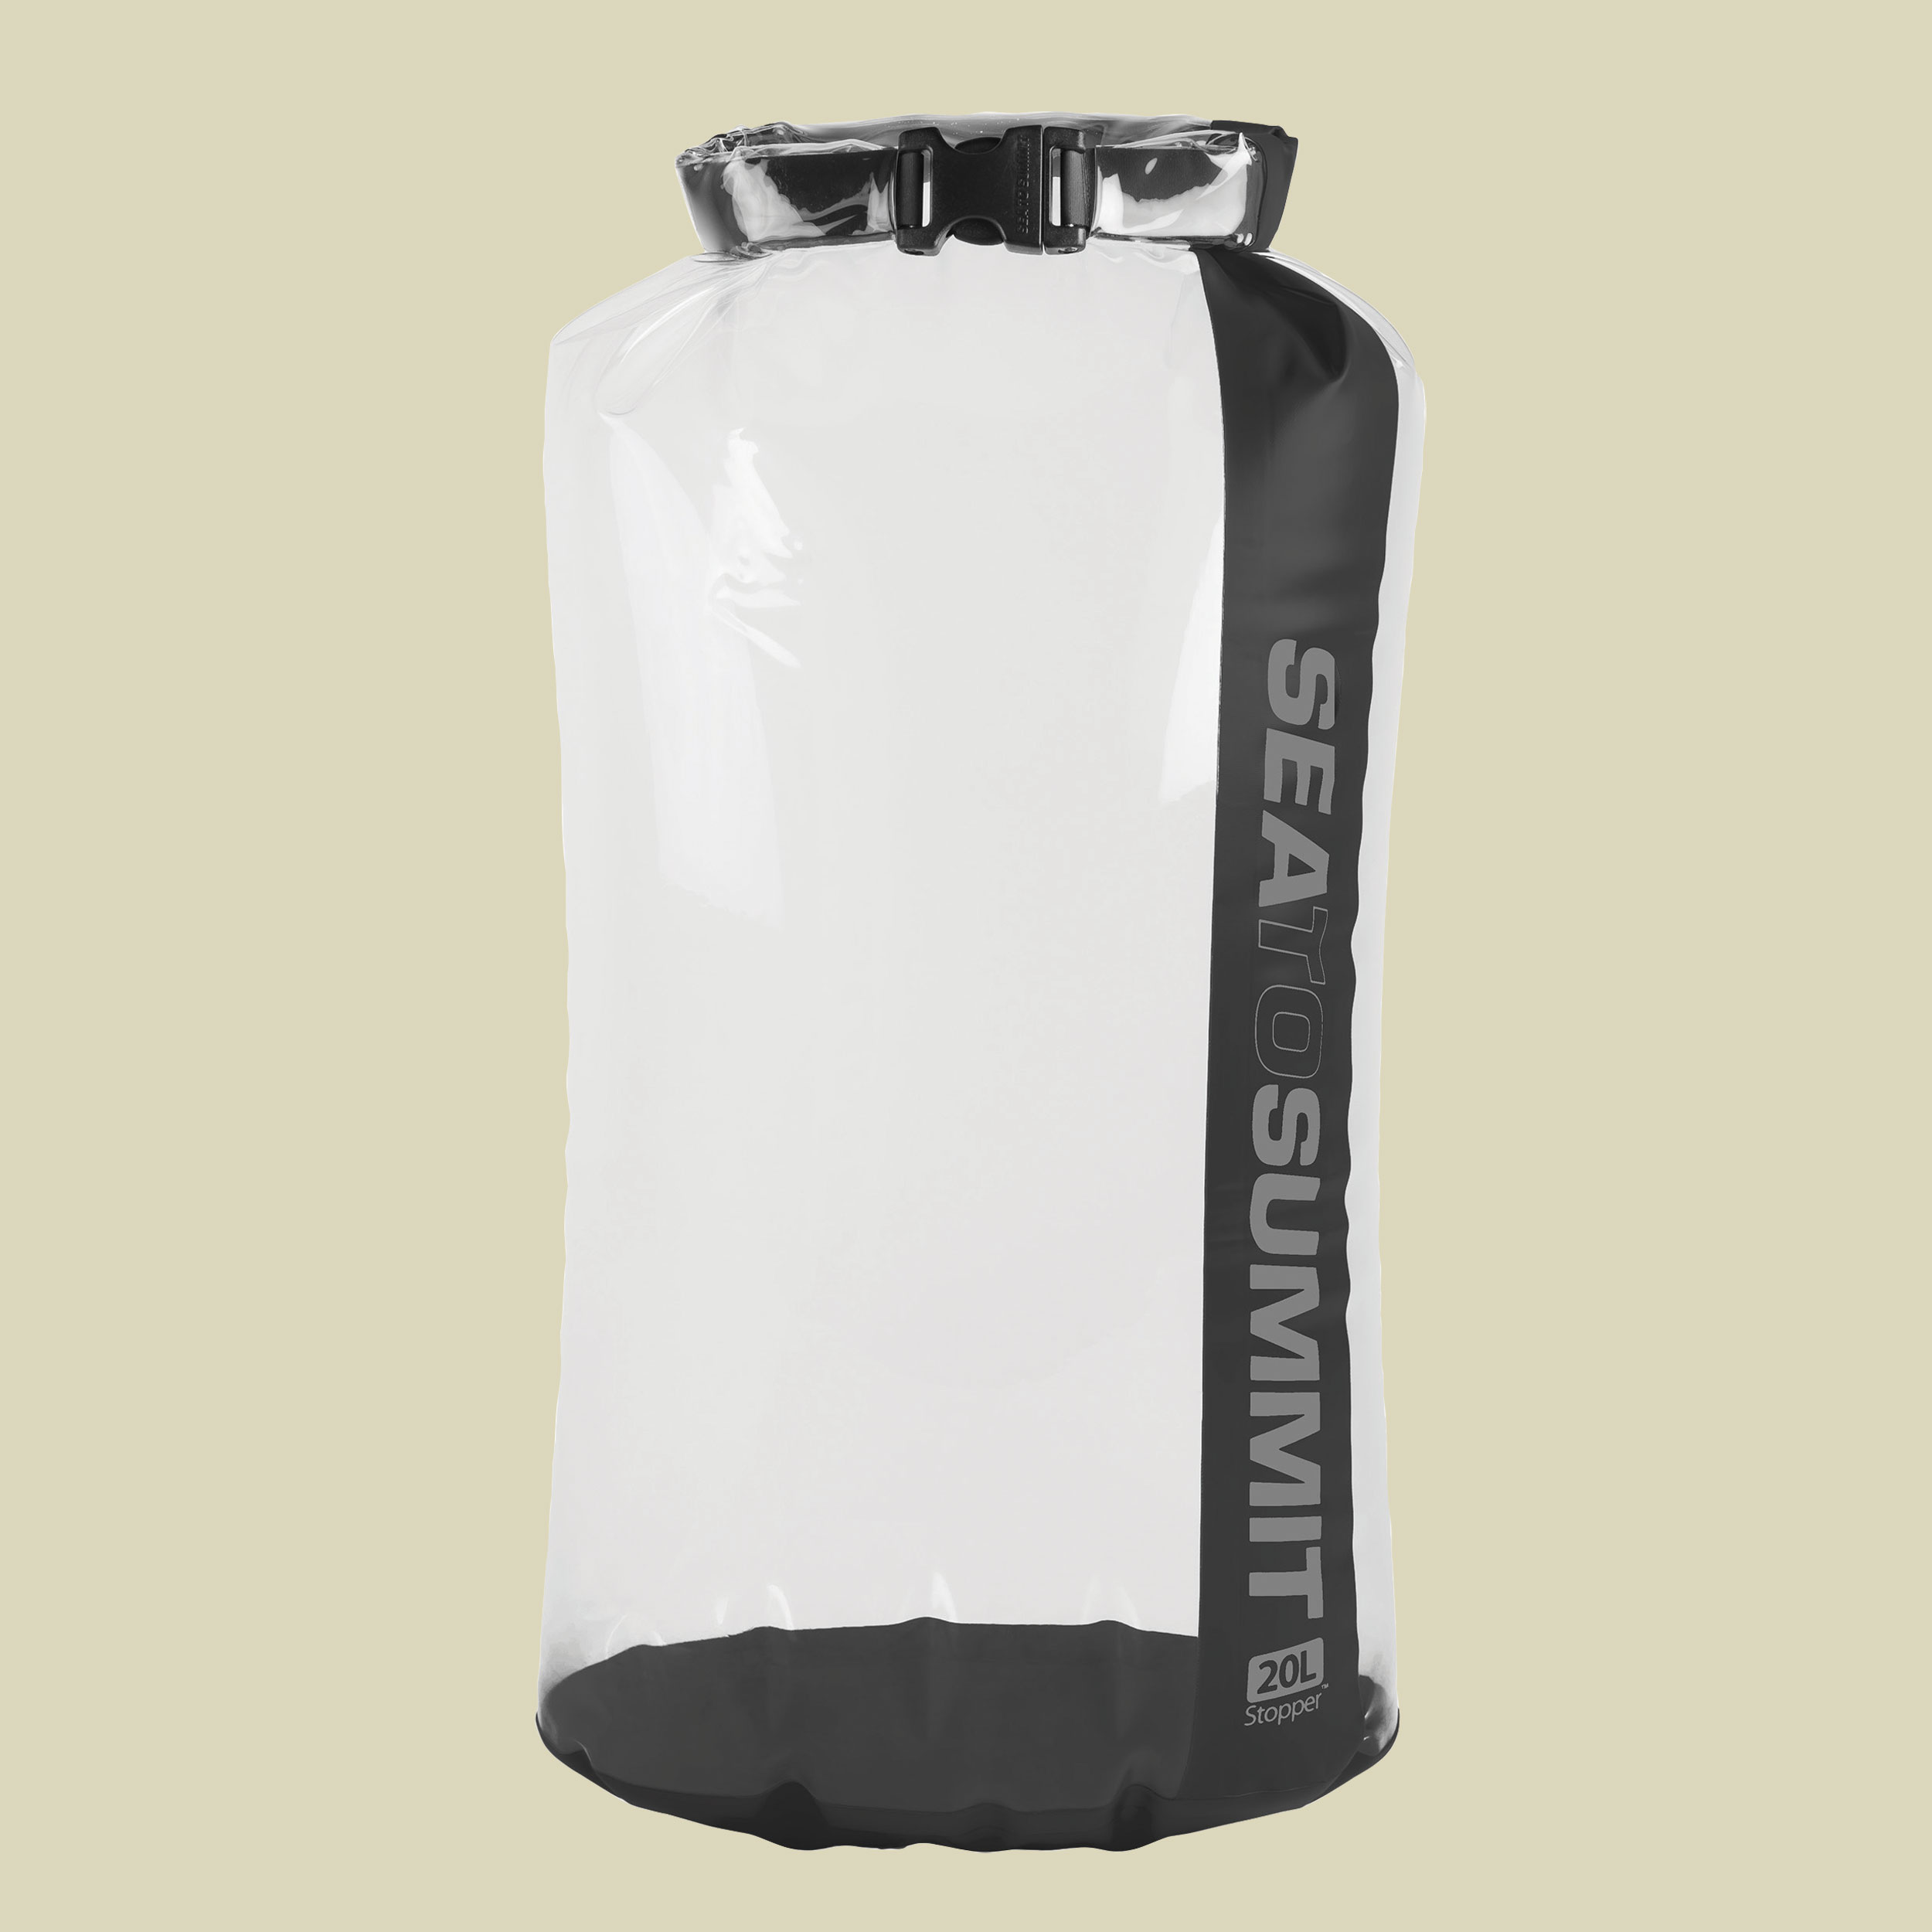 Image of Sea to Summit Stopper Clear Dry Bag Packsack Gr 20 l weiß/schwarz